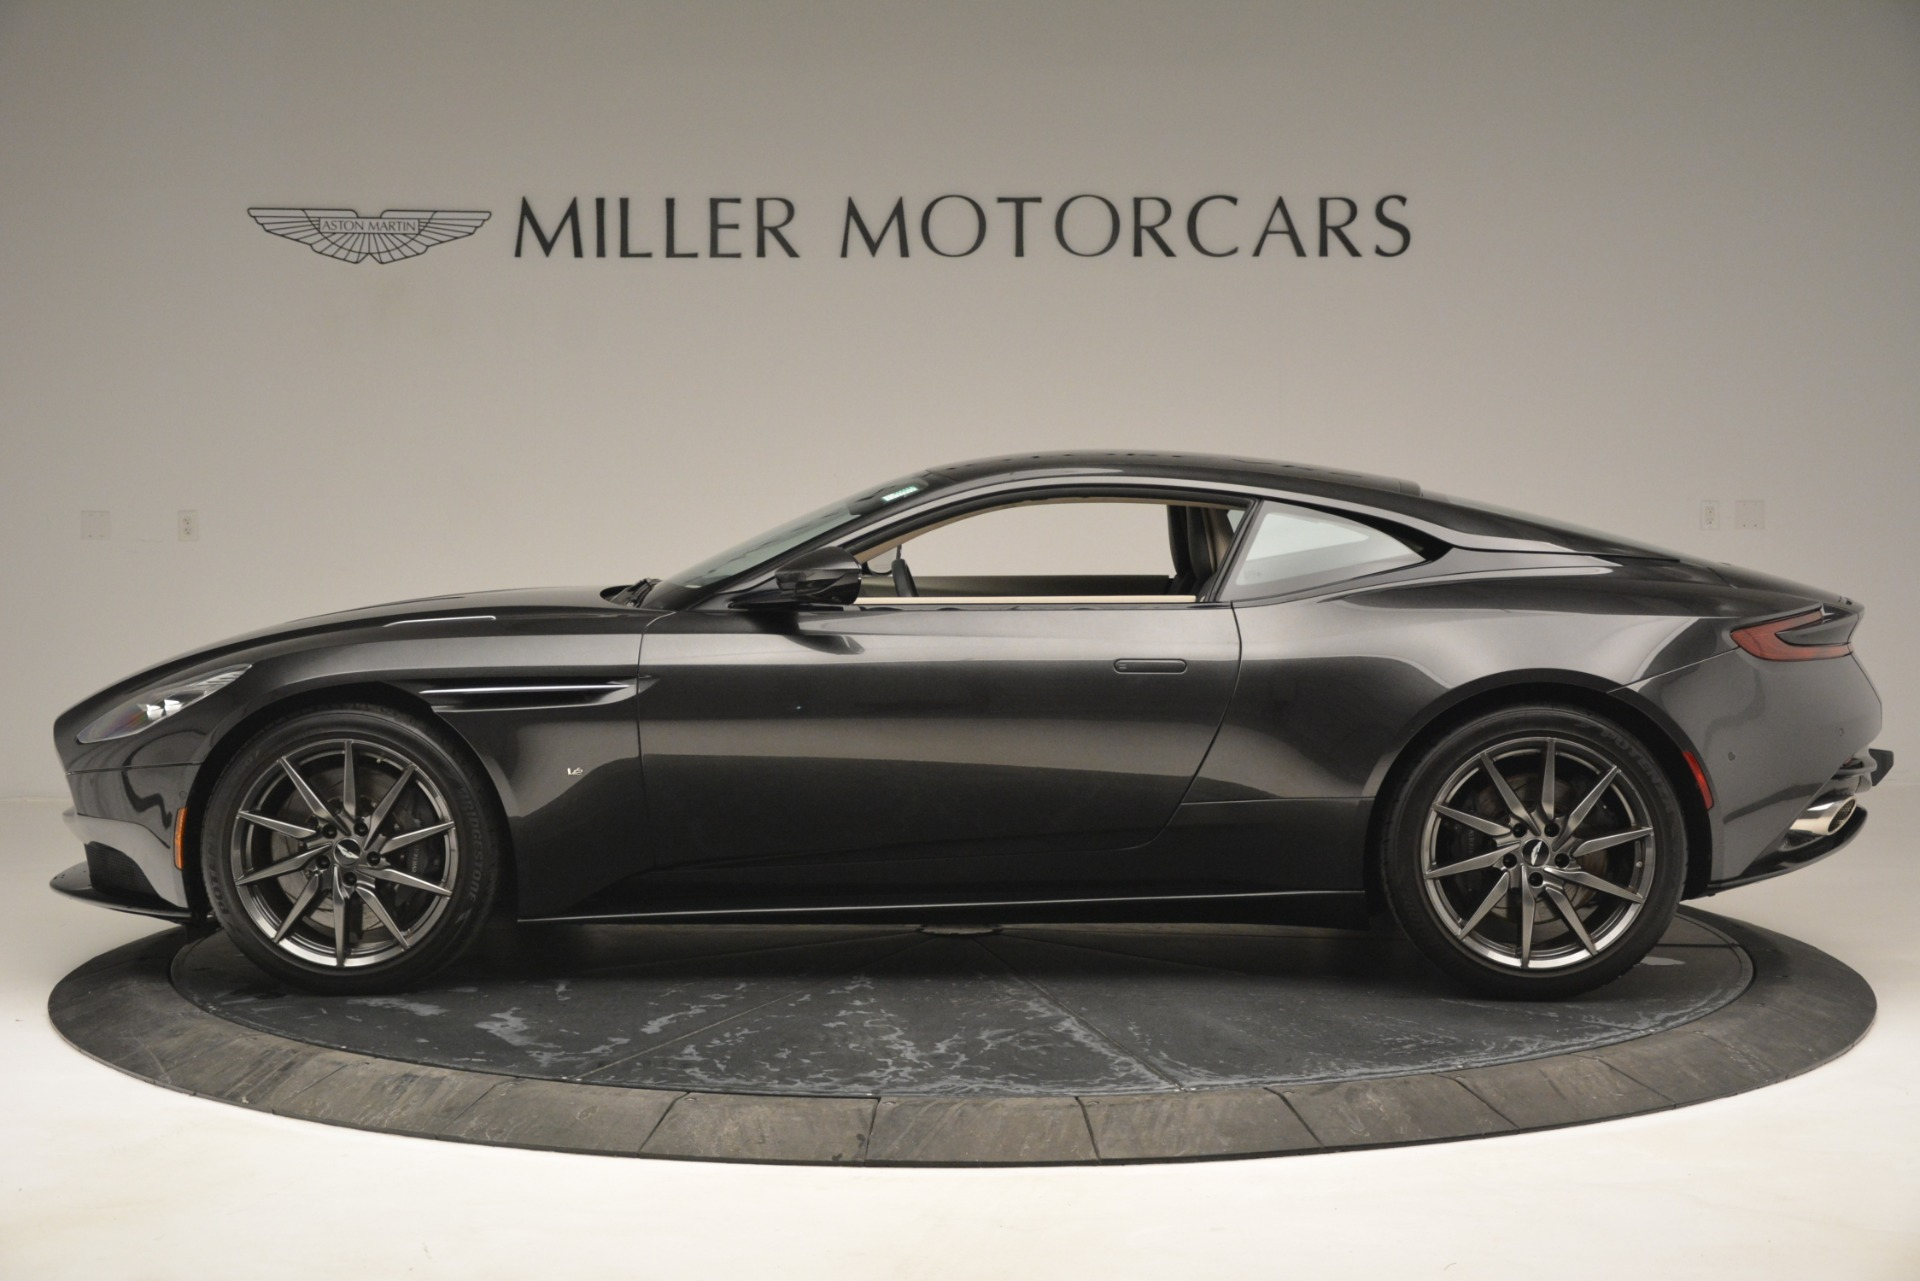 Used 2017 Aston Martin DB11 V12 Coupe For Sale In Greenwich, CT. Alfa Romeo of Greenwich, 7500 2988_p3